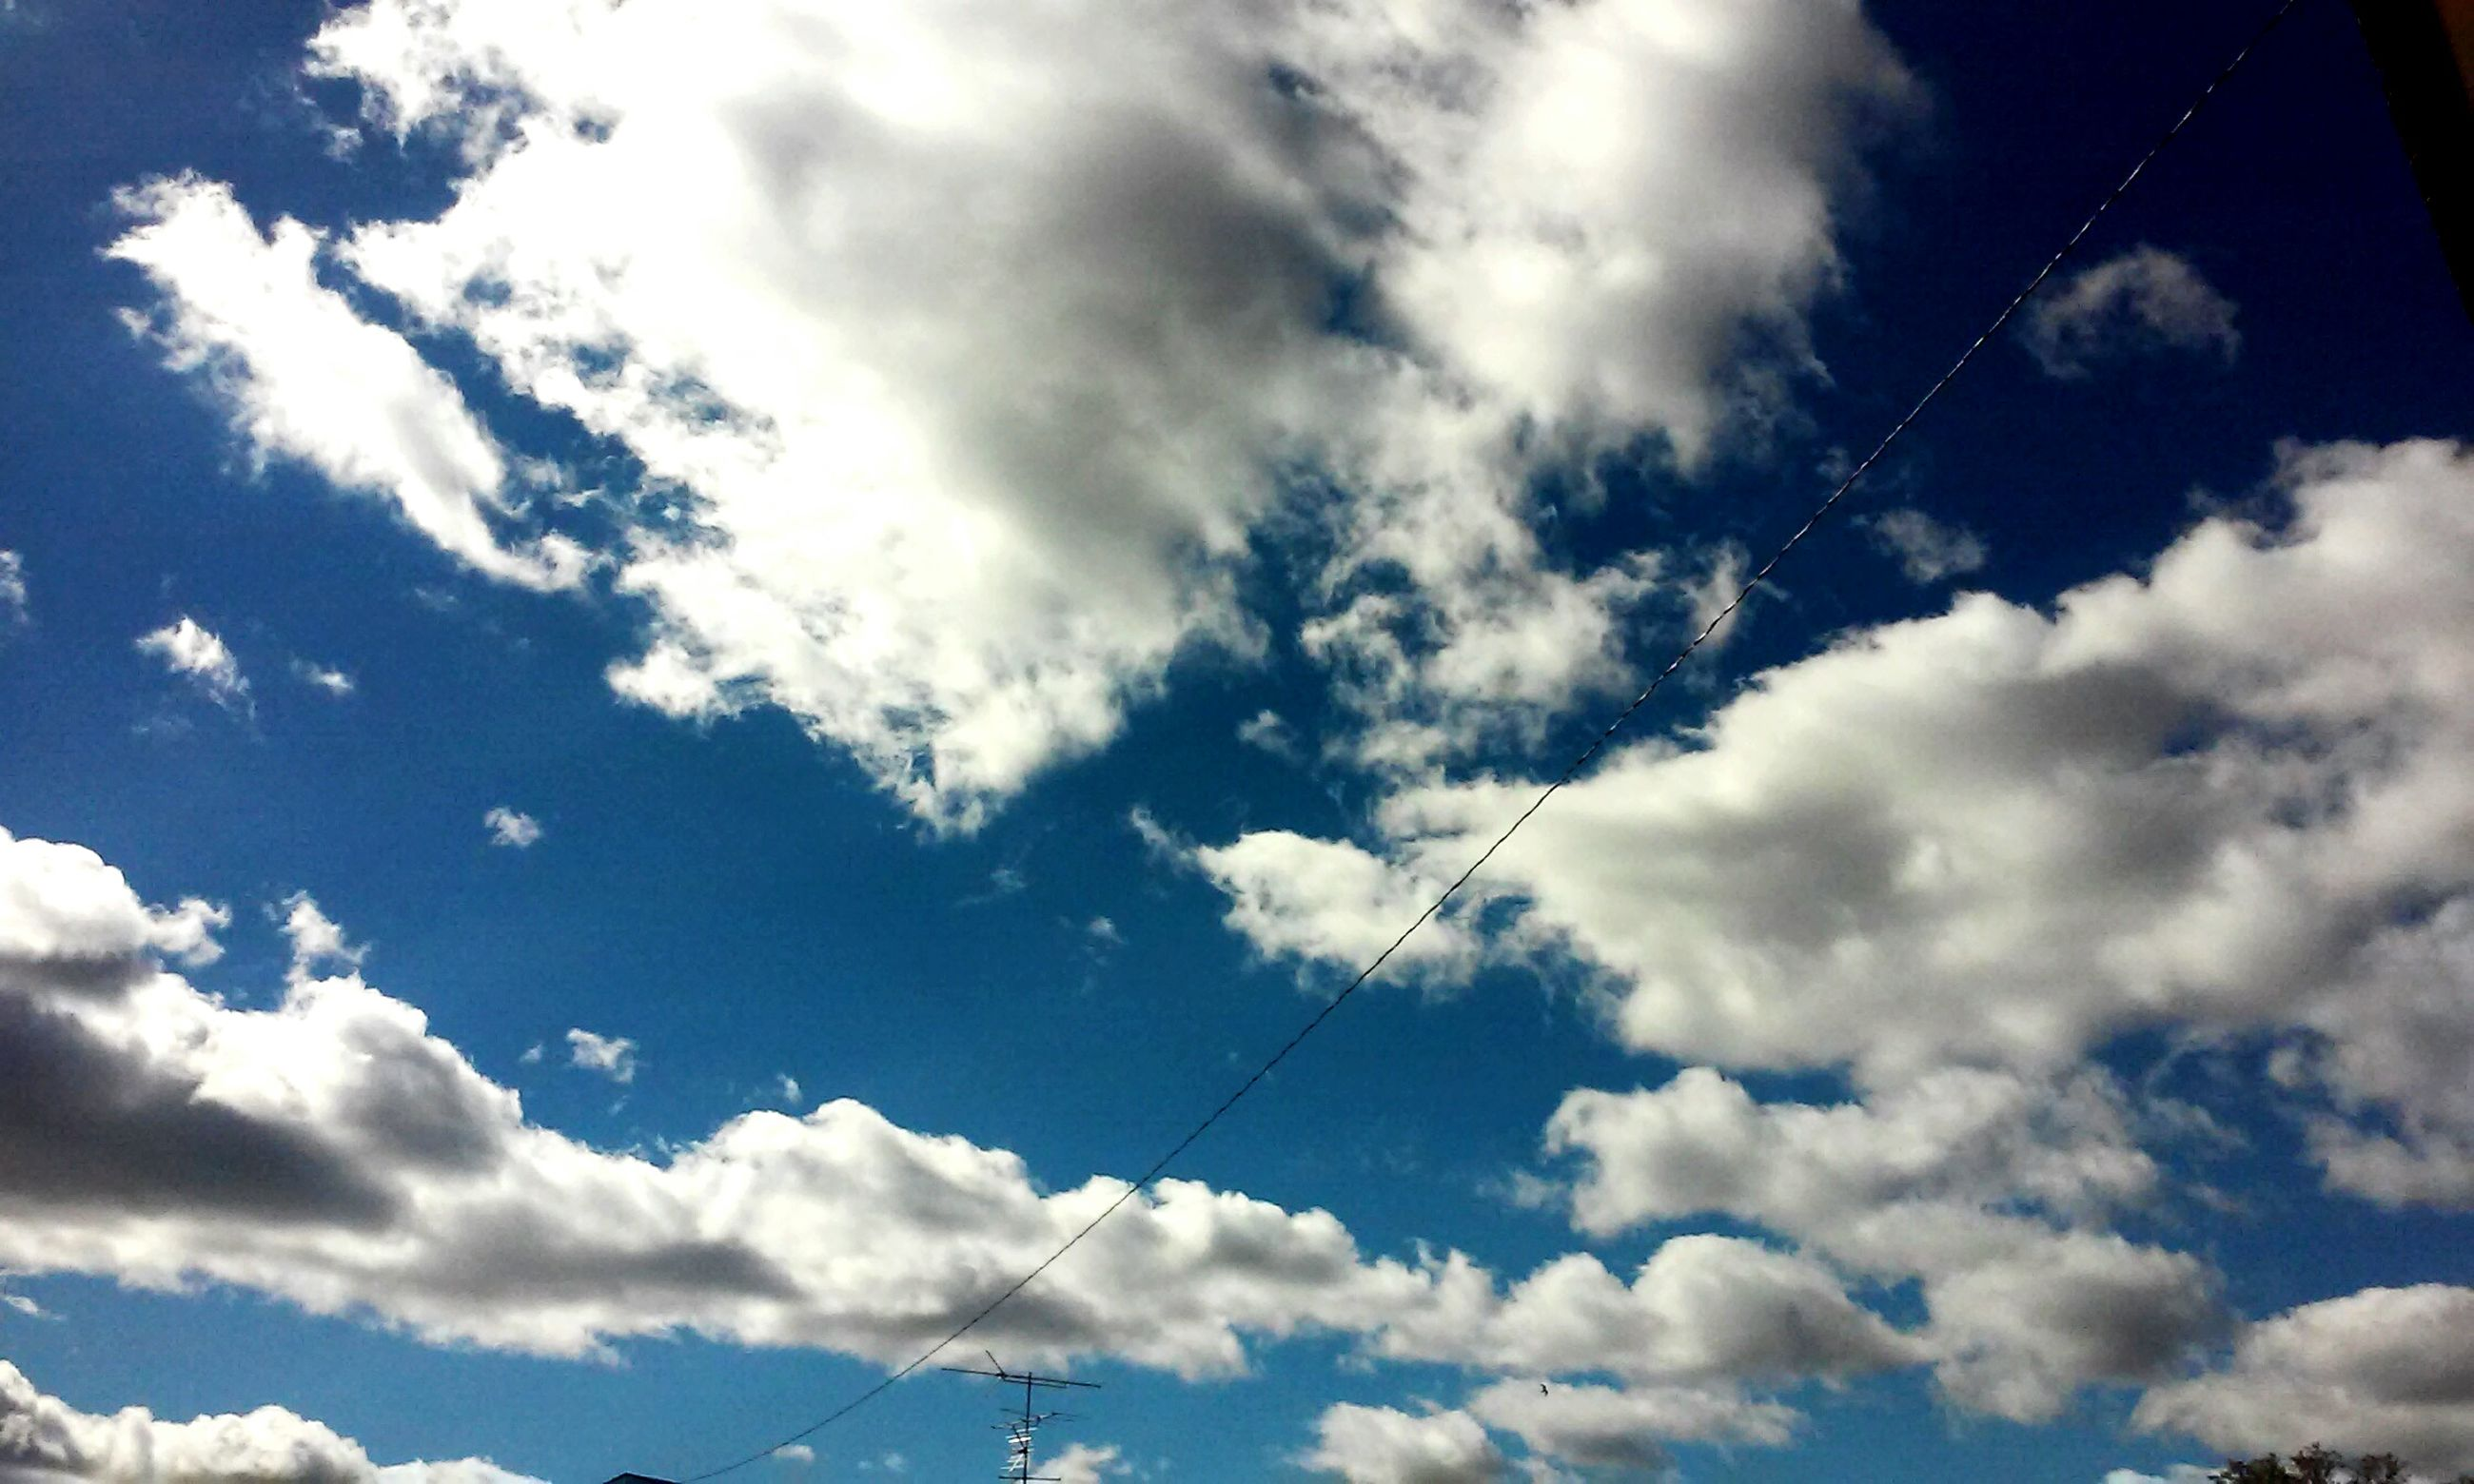 low angle view, blue, sky, scenics, tranquility, tranquil scene, beauty in nature, cloud, cloud - sky, white, day, nature, majestic, sky only, outdoors, cloudscape, cloudy, heaven, power line, no people, atmosphere, non-urban scene